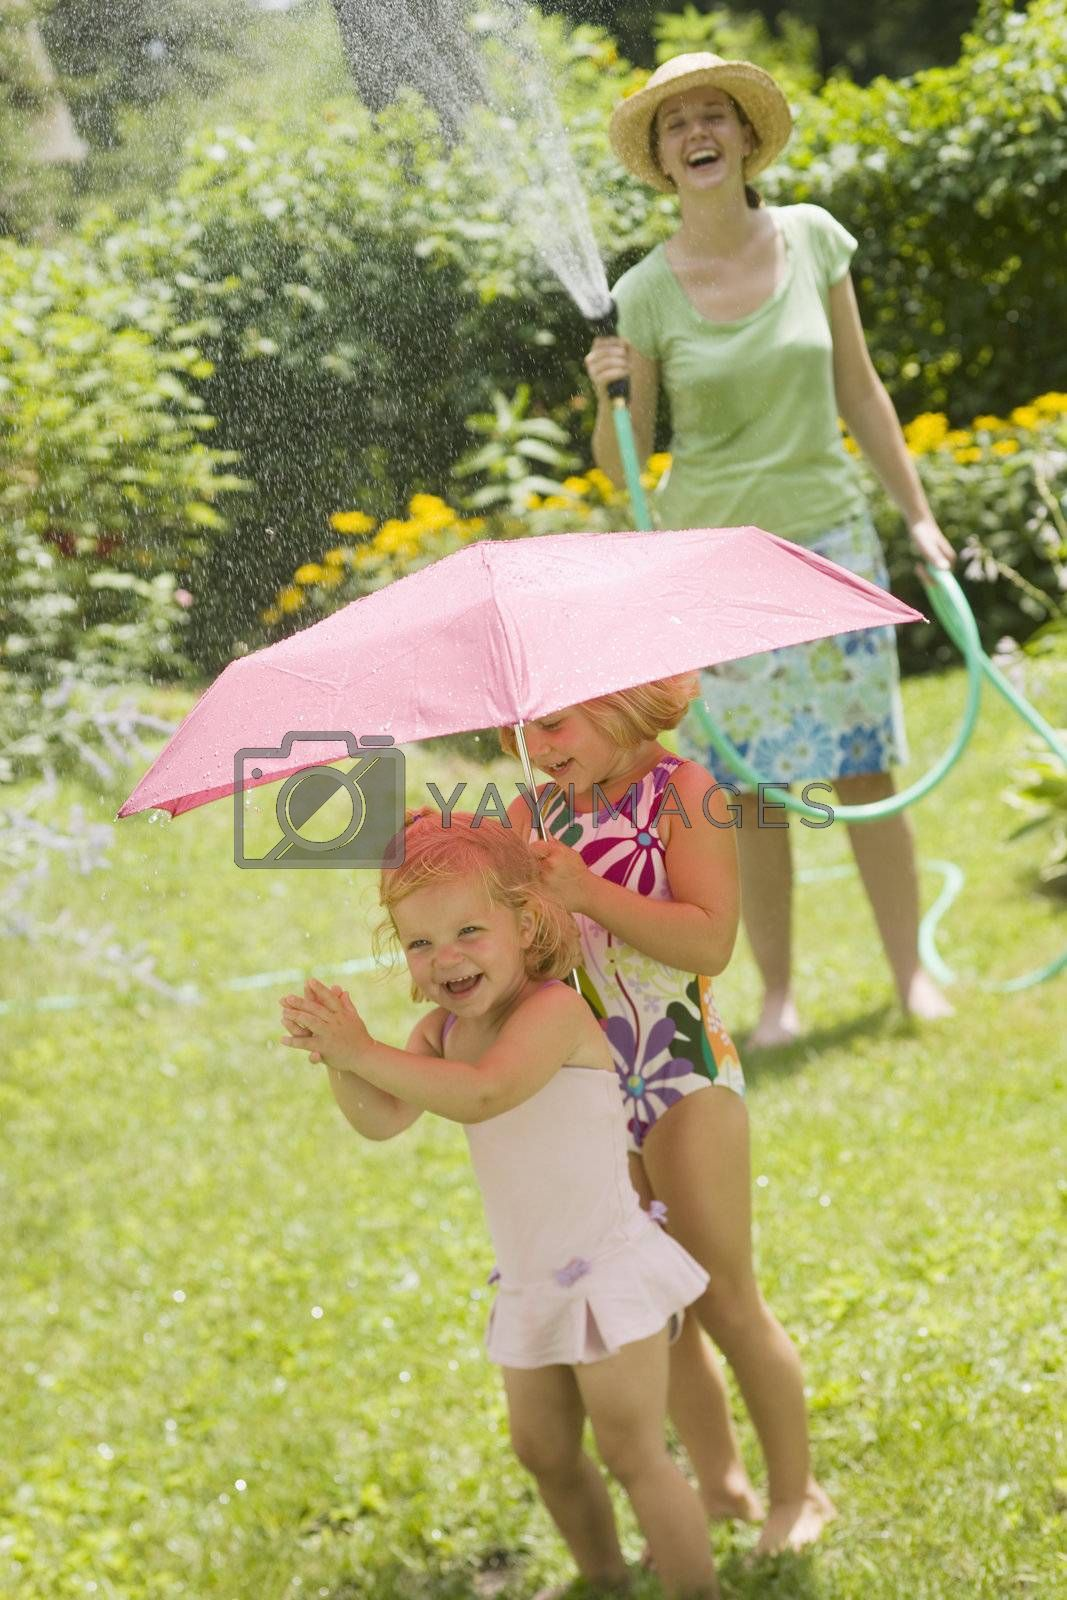 Smiling woman spaying little girls with water from a garden hose in the summertime